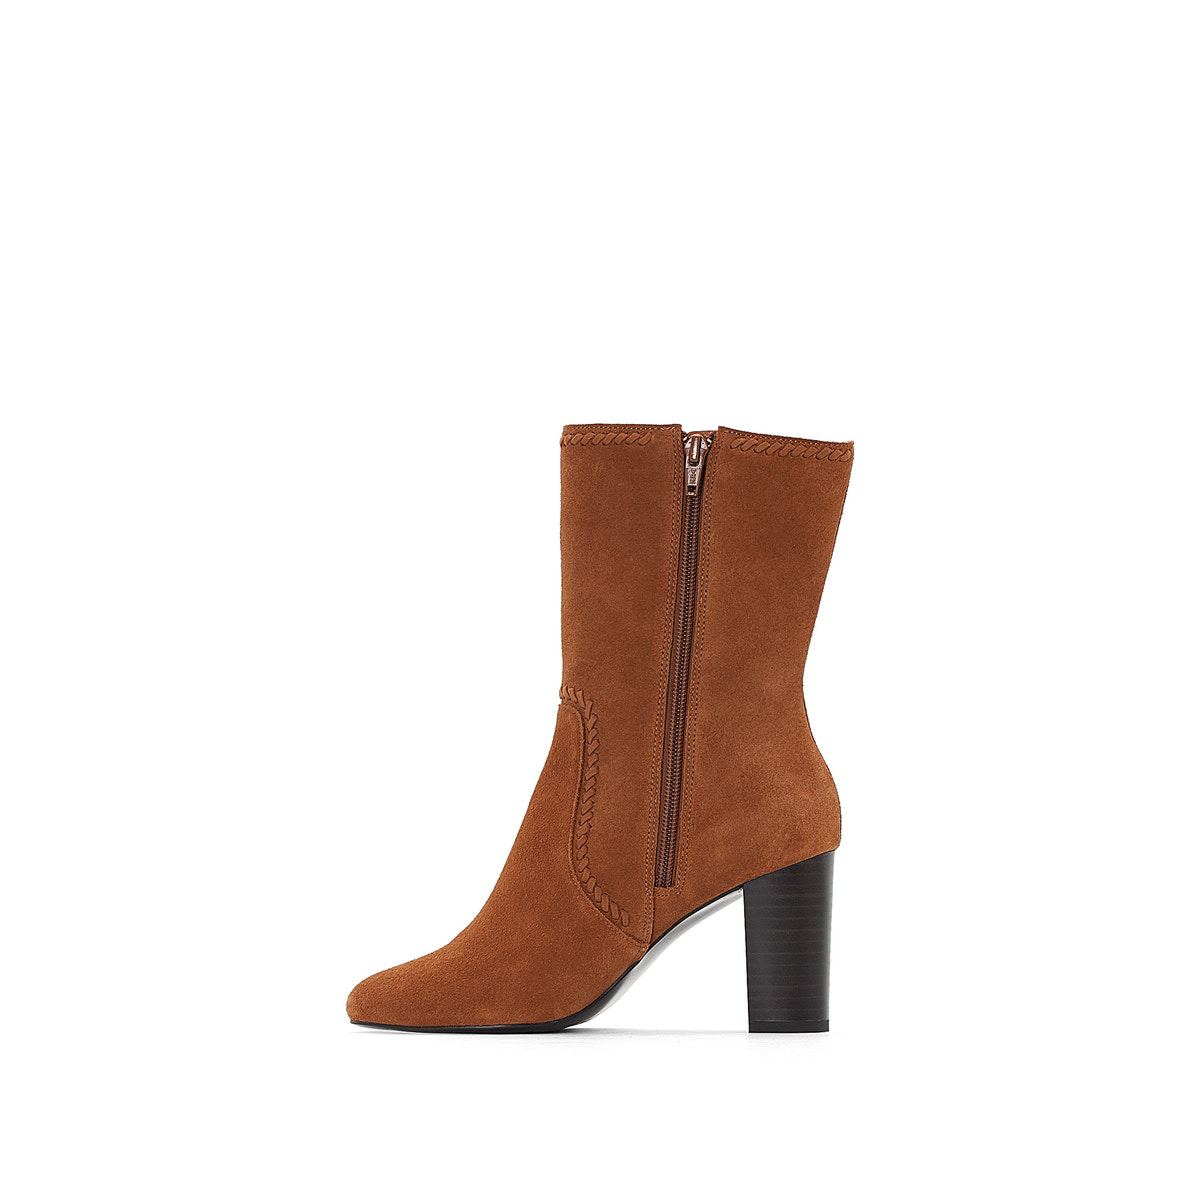 La rotoute Collections damen High High High Heeled Leather Ankle Stiefel cb3f91